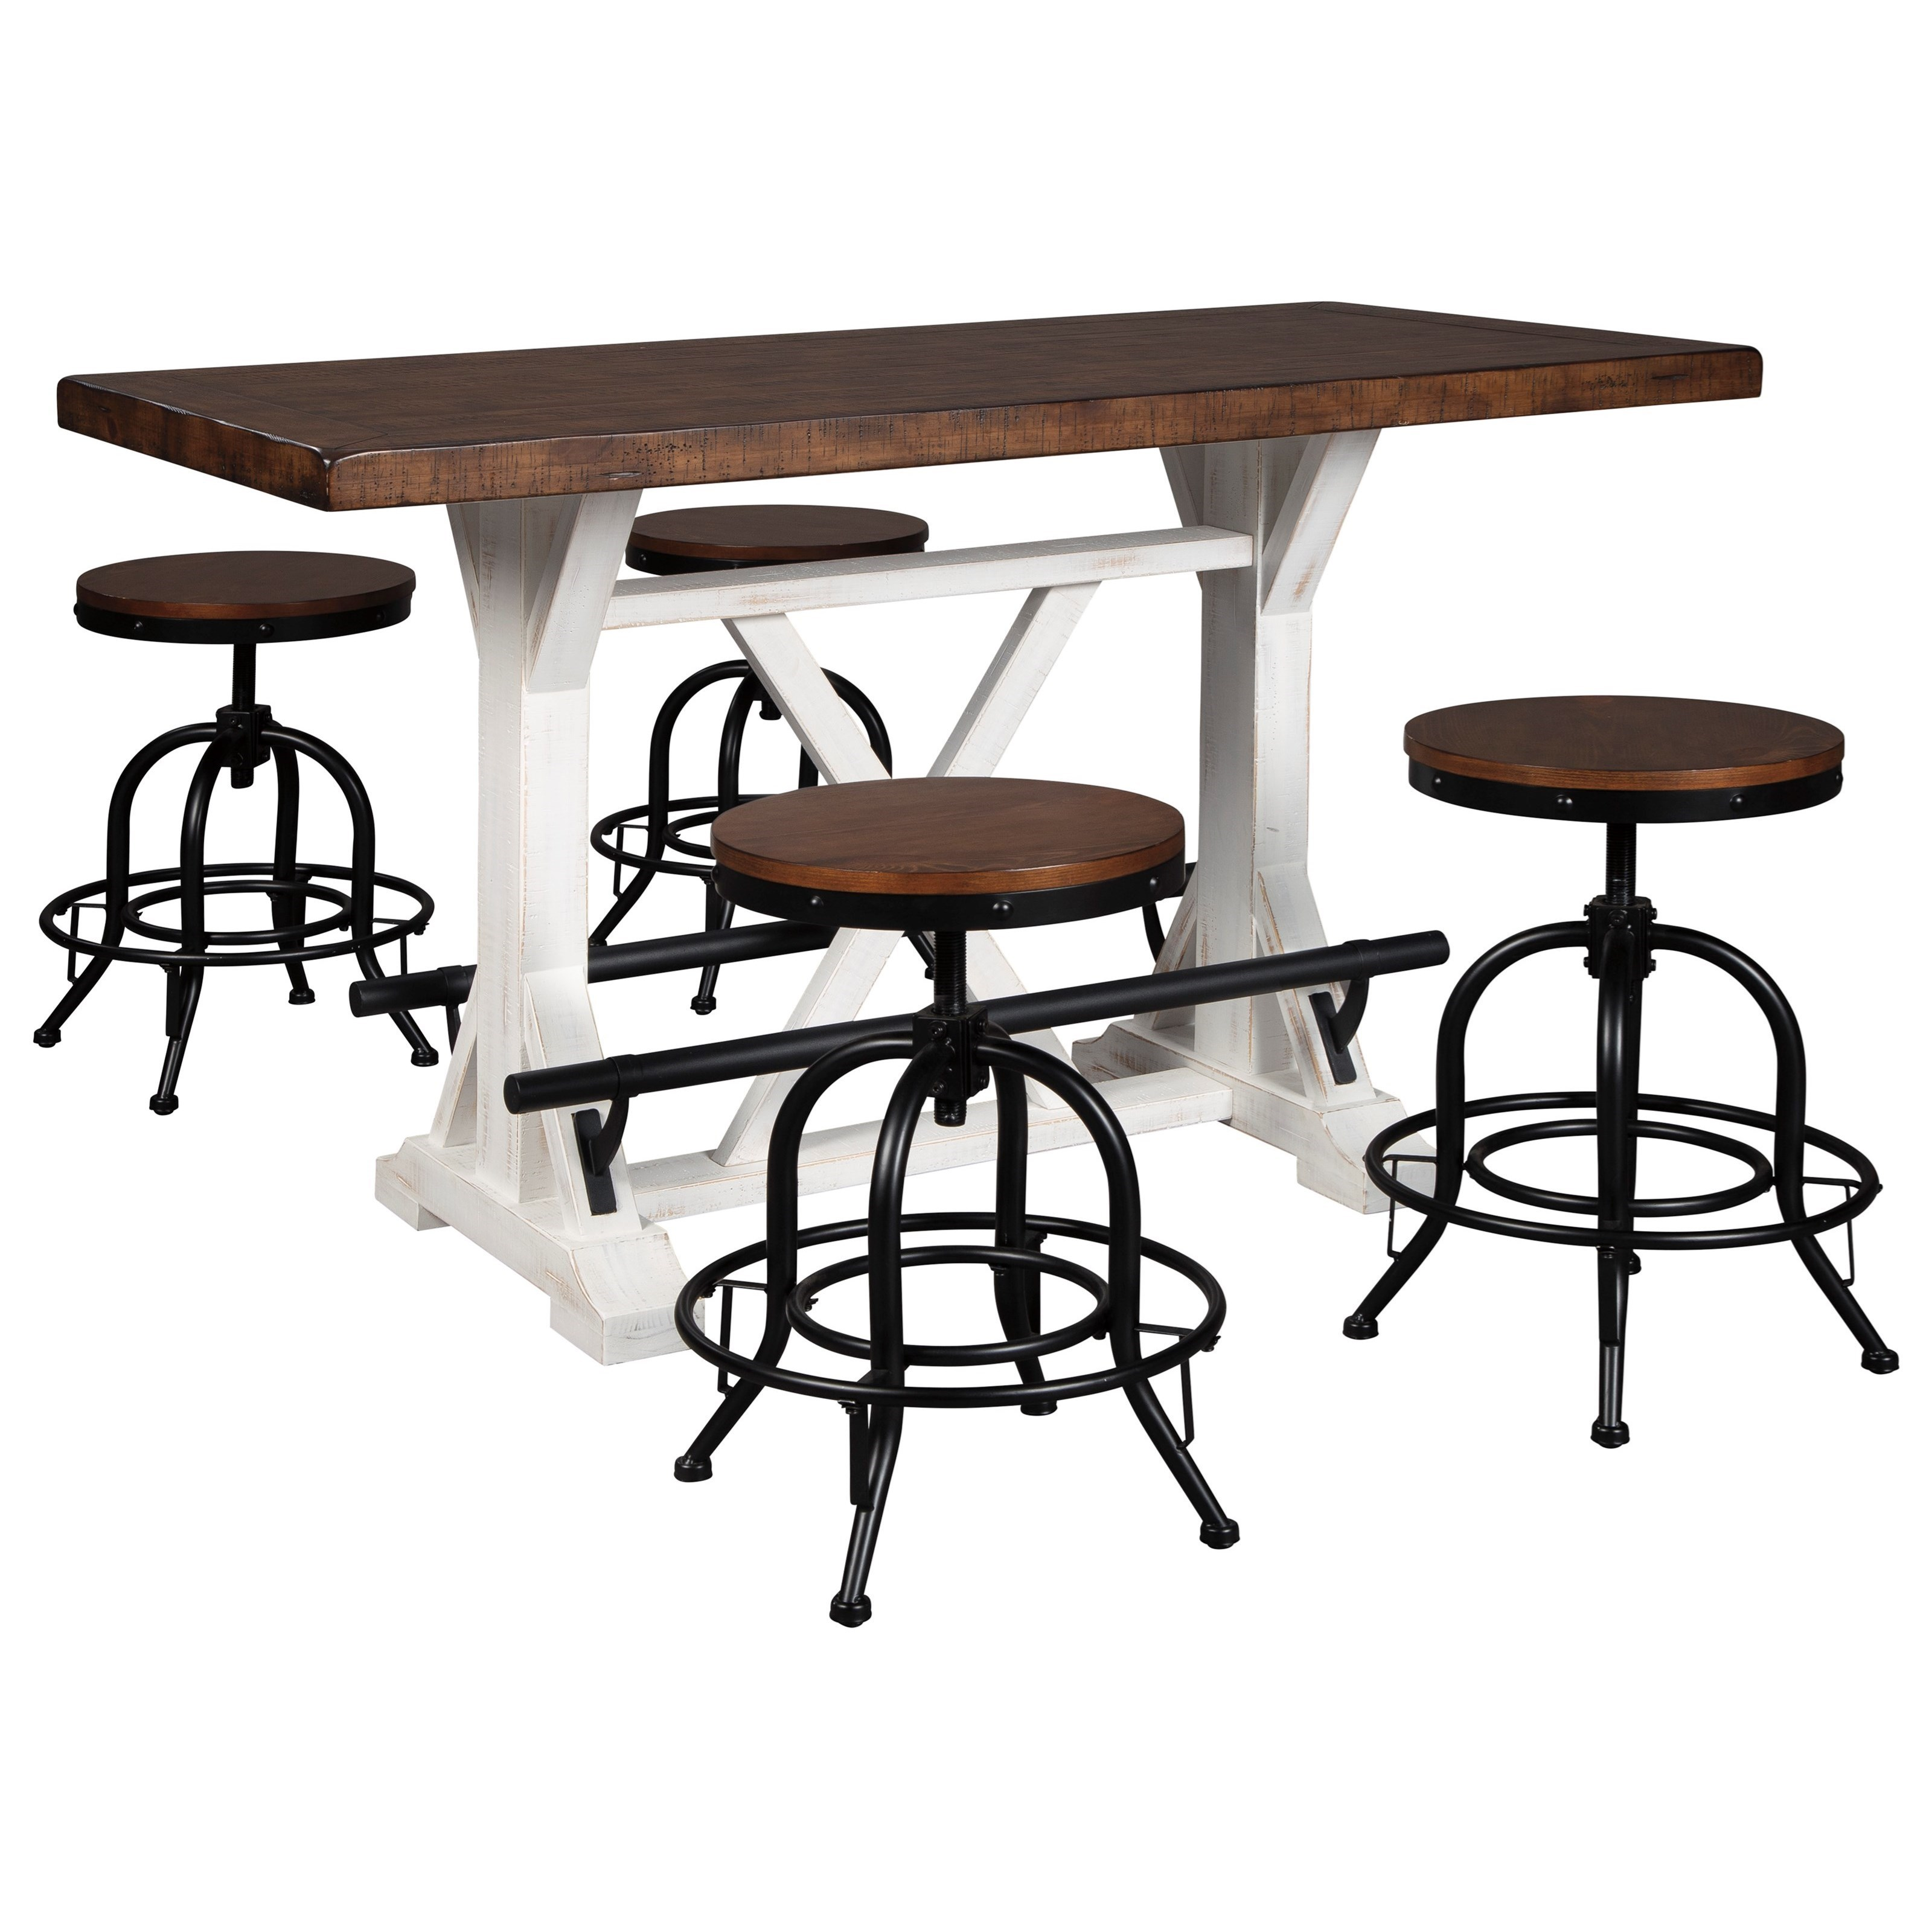 Table And Bar Stools Valebeck 5 Piece Counter Height Dining Set By Signature Design By Ashley At Lindy S Furniture Company